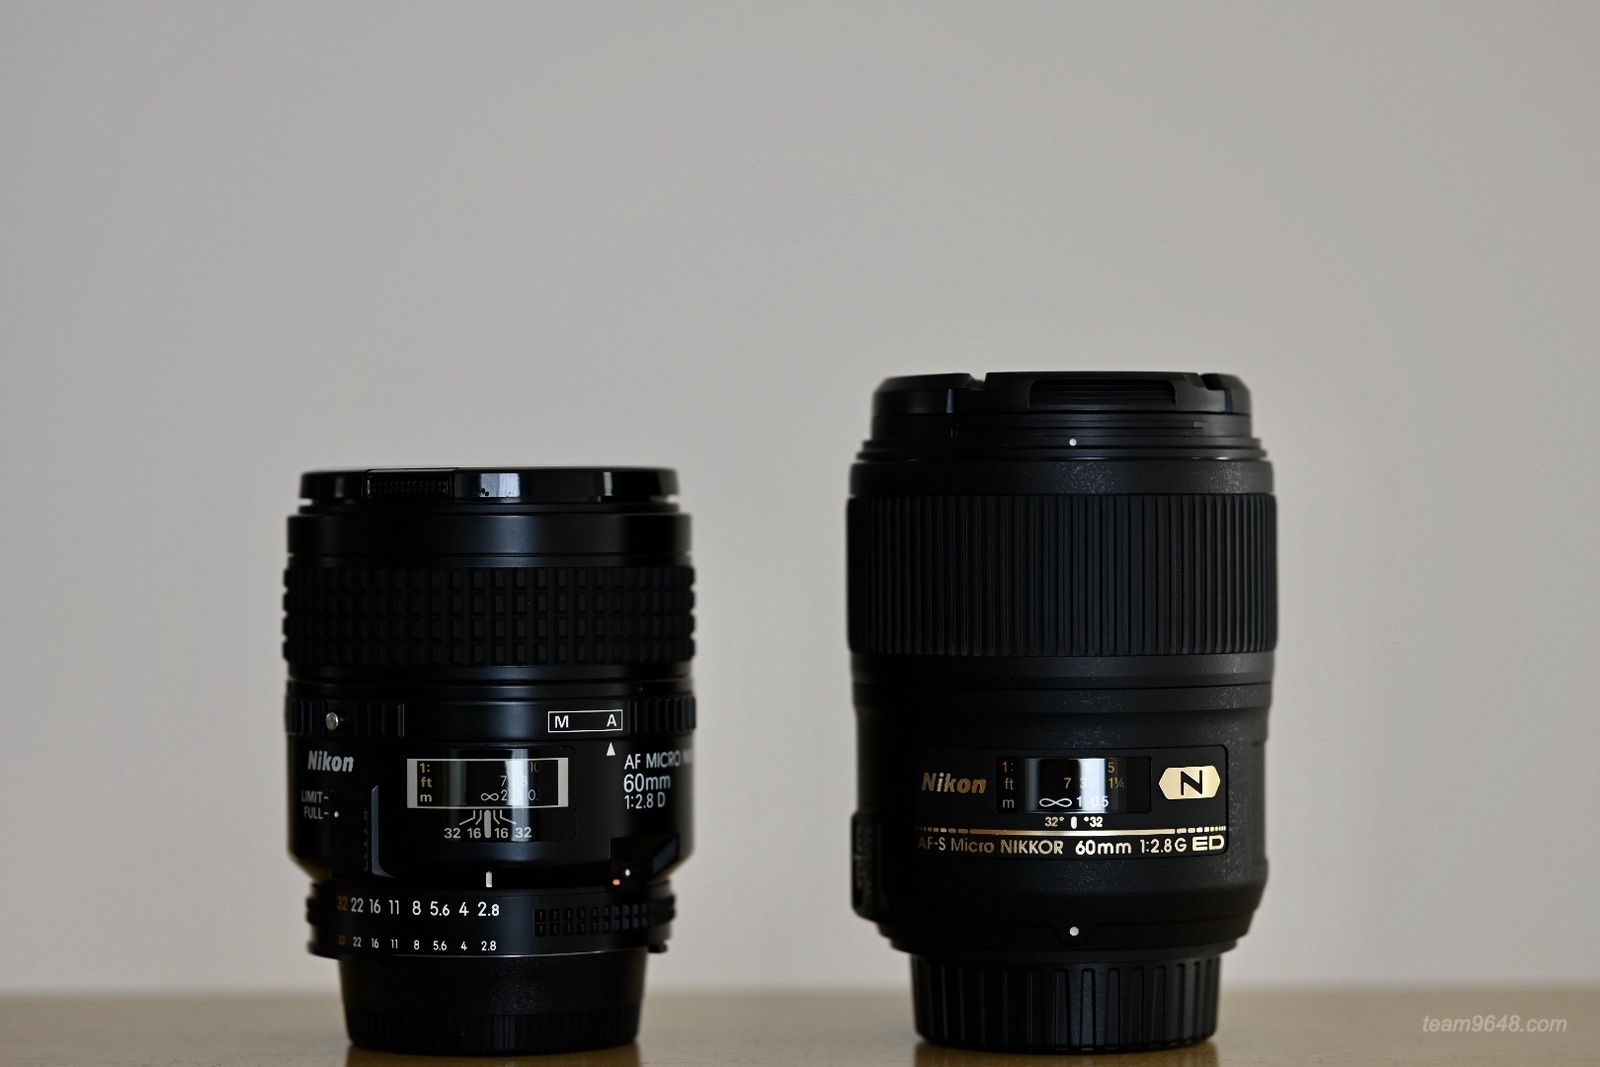 Nikon AF-S Micro NIKKOR 60mm f/2.8G EDを買った